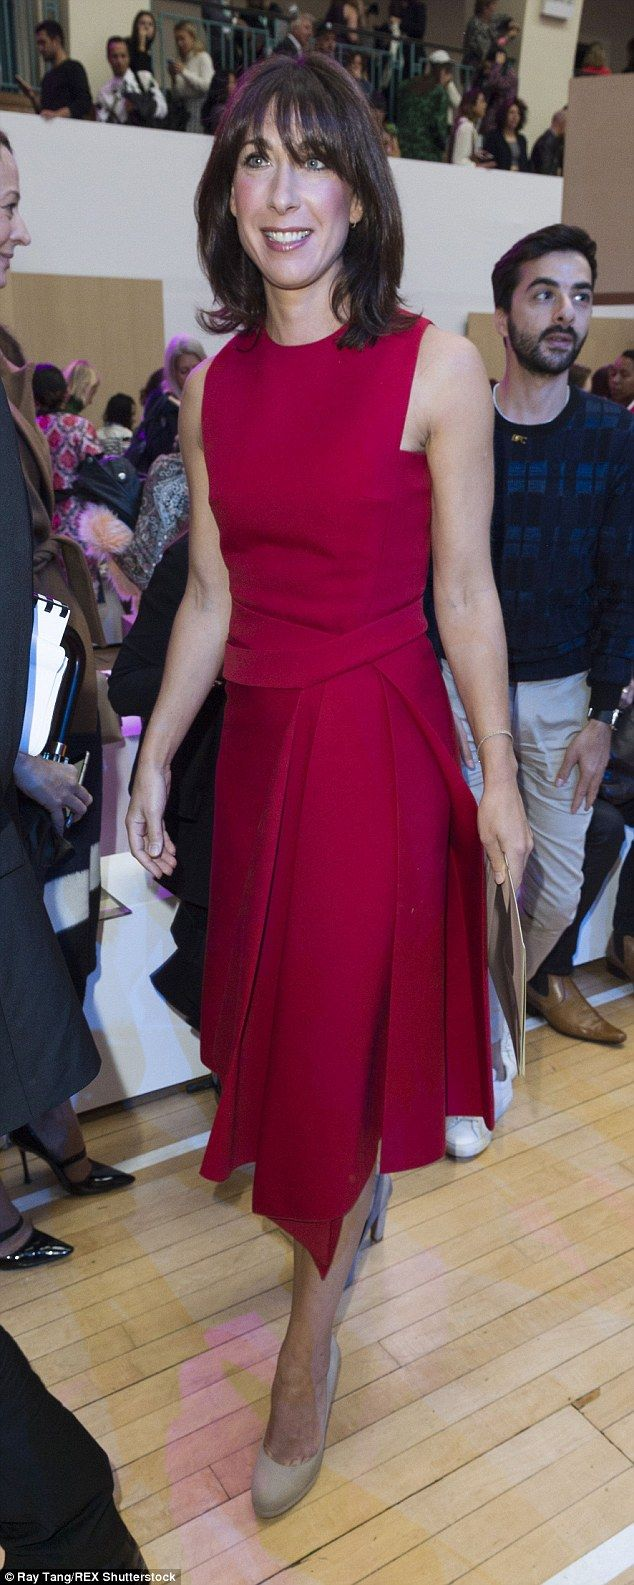 Samantha Cameron looked ravishing in red as she arrived to take her seat in the front row of Roksanda's spring/summer 16 show